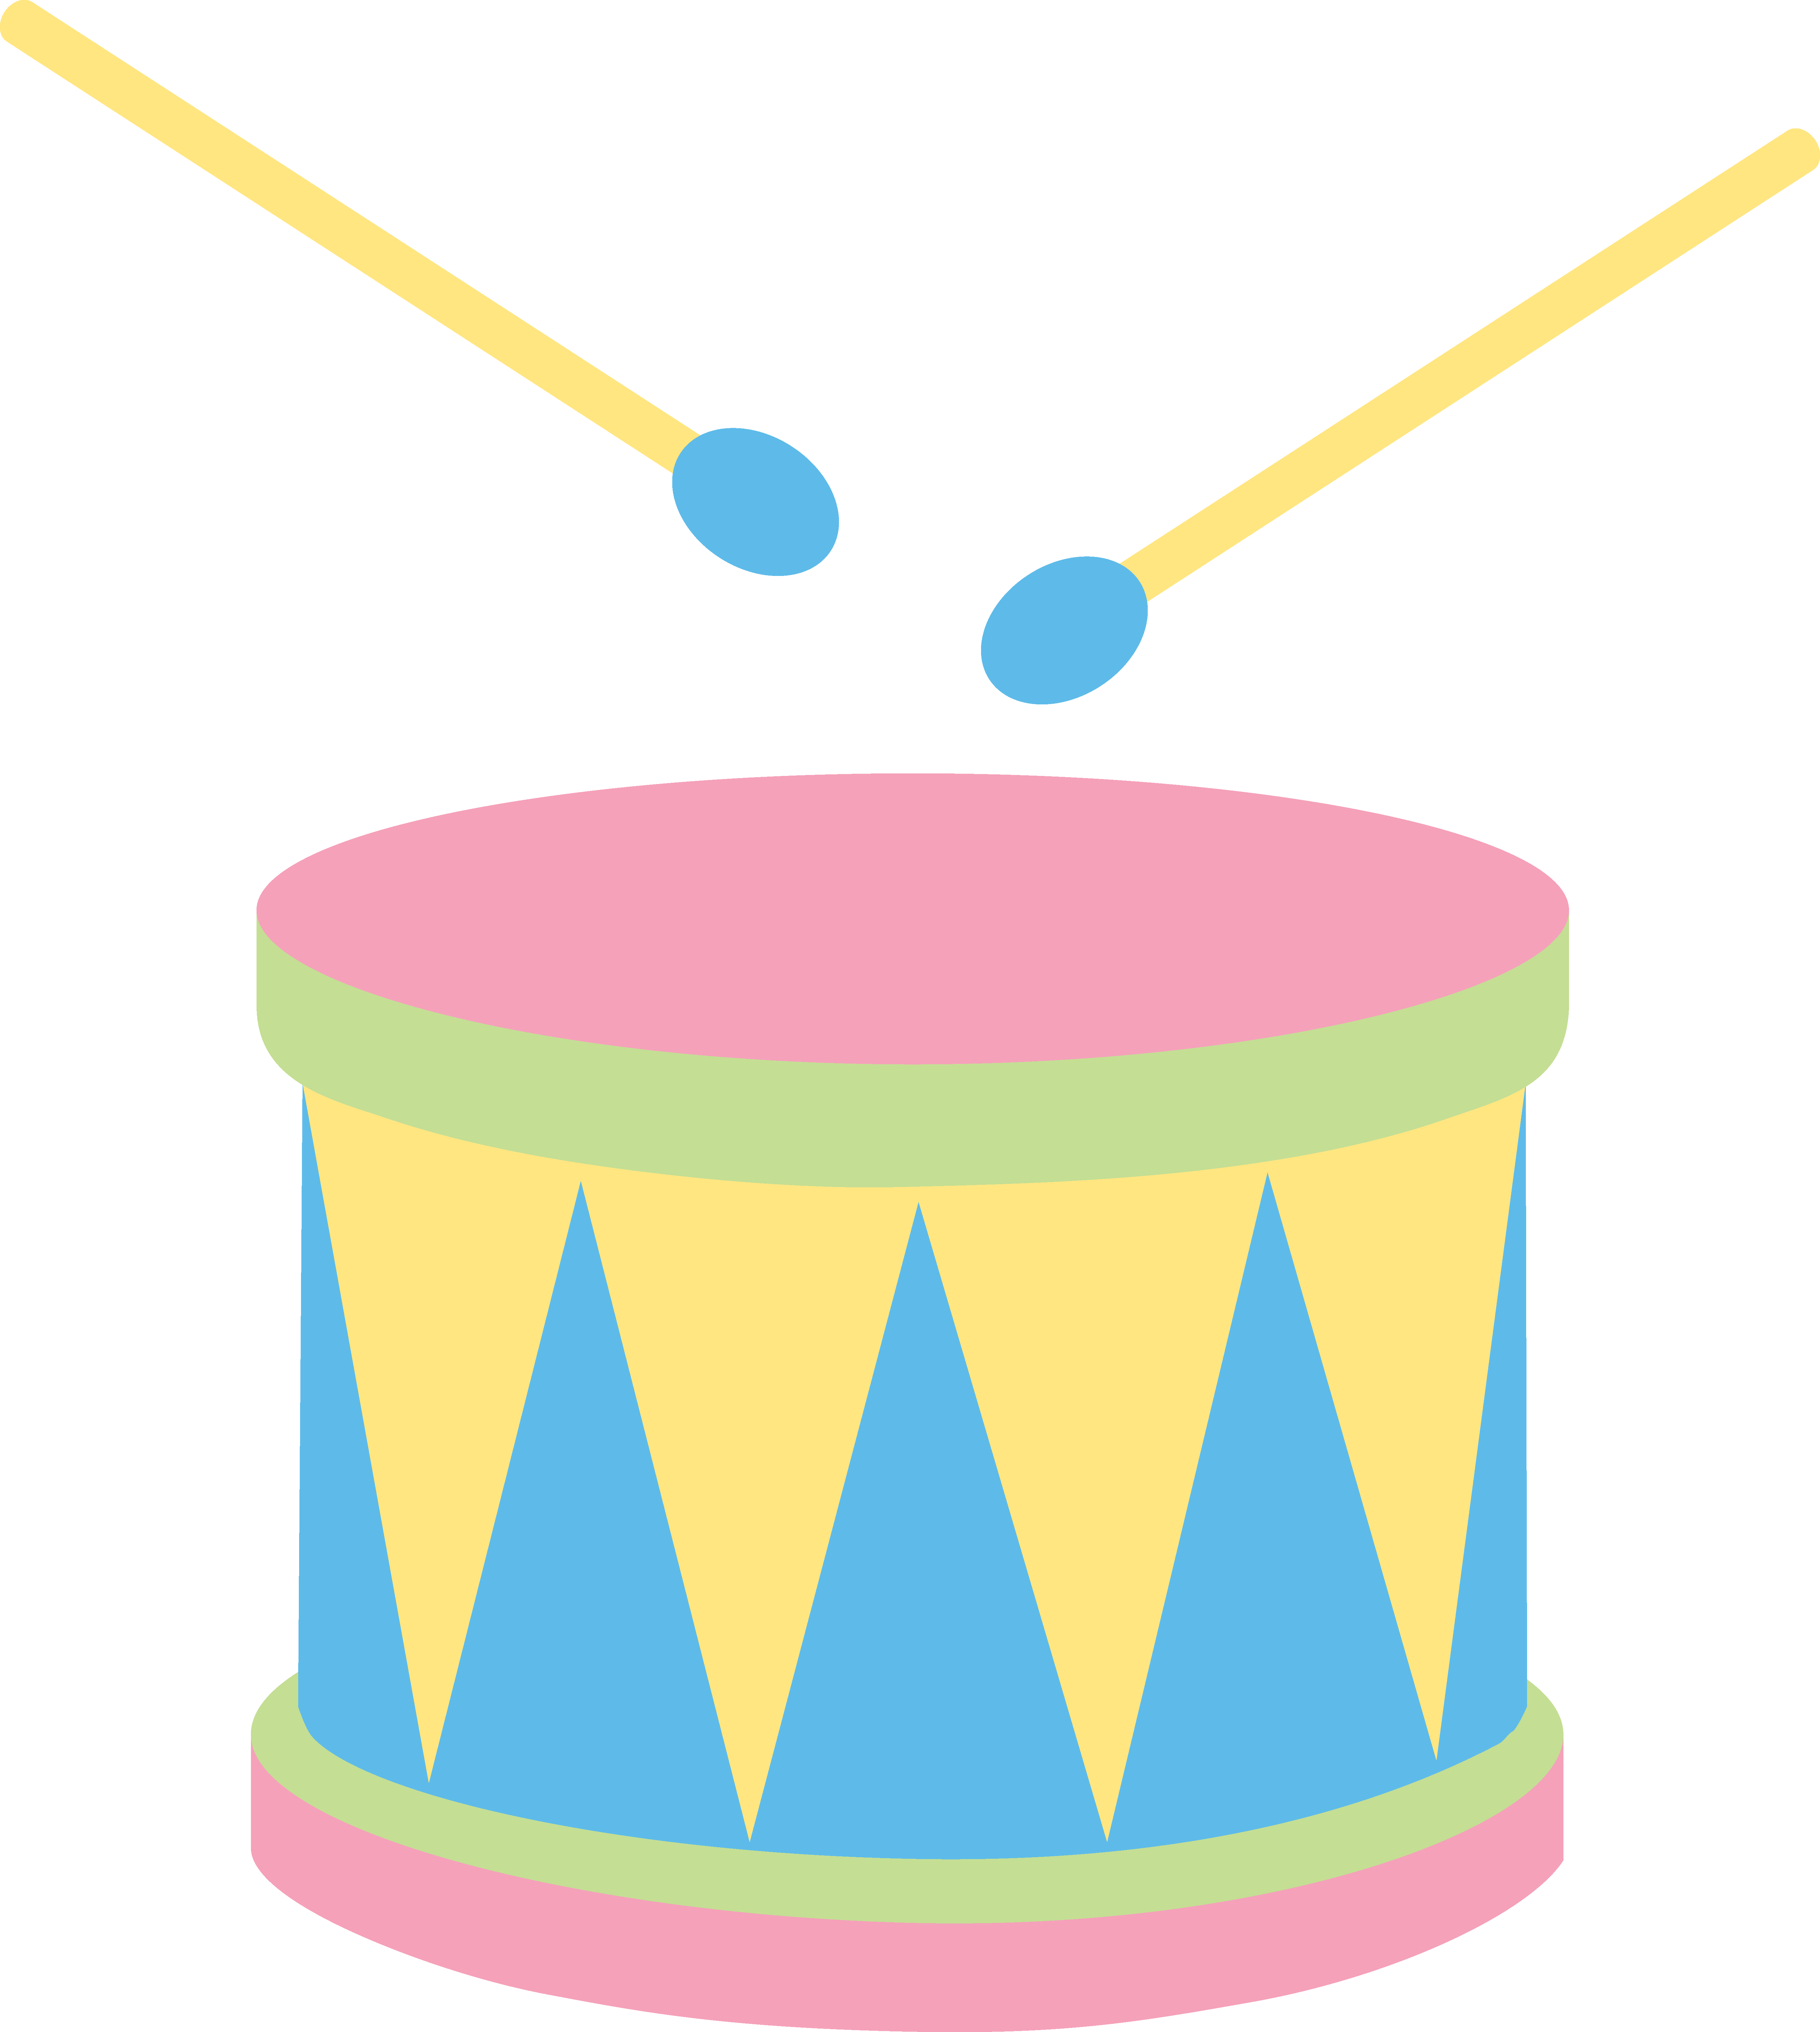 Drawing drums cute. Clipart colored frames illustrations